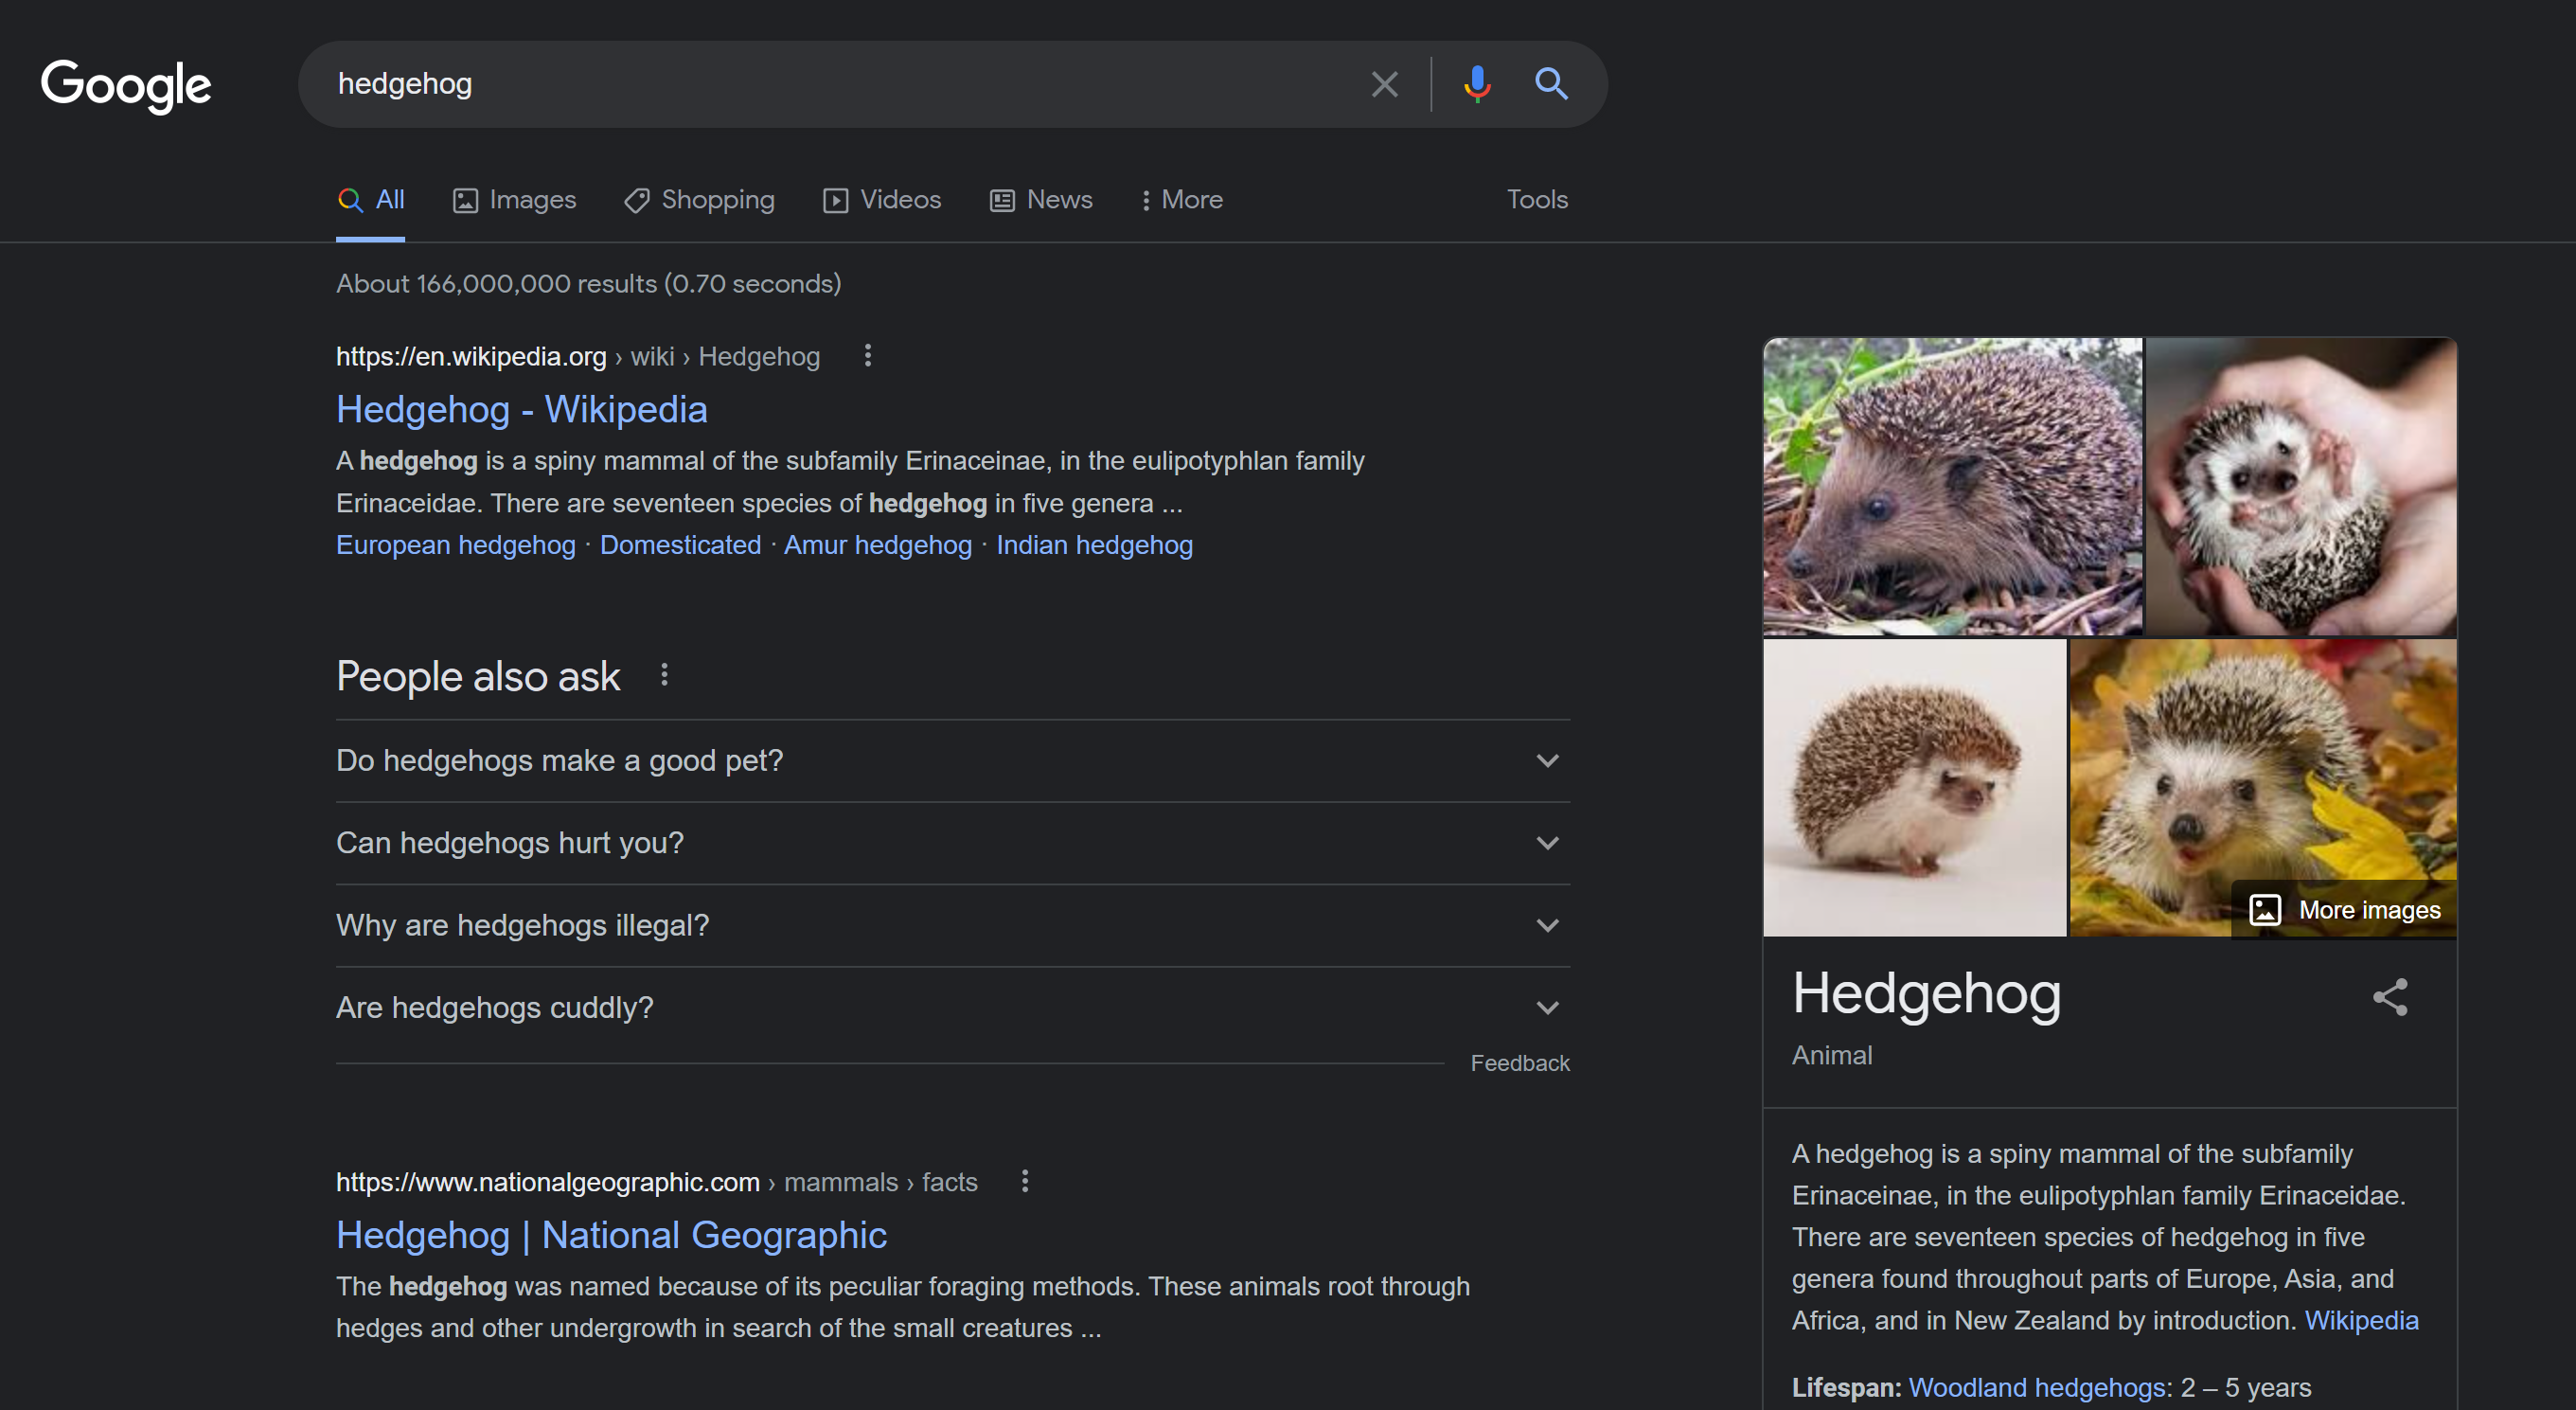 Google Search finally has a dark mode — here's how to turn it on